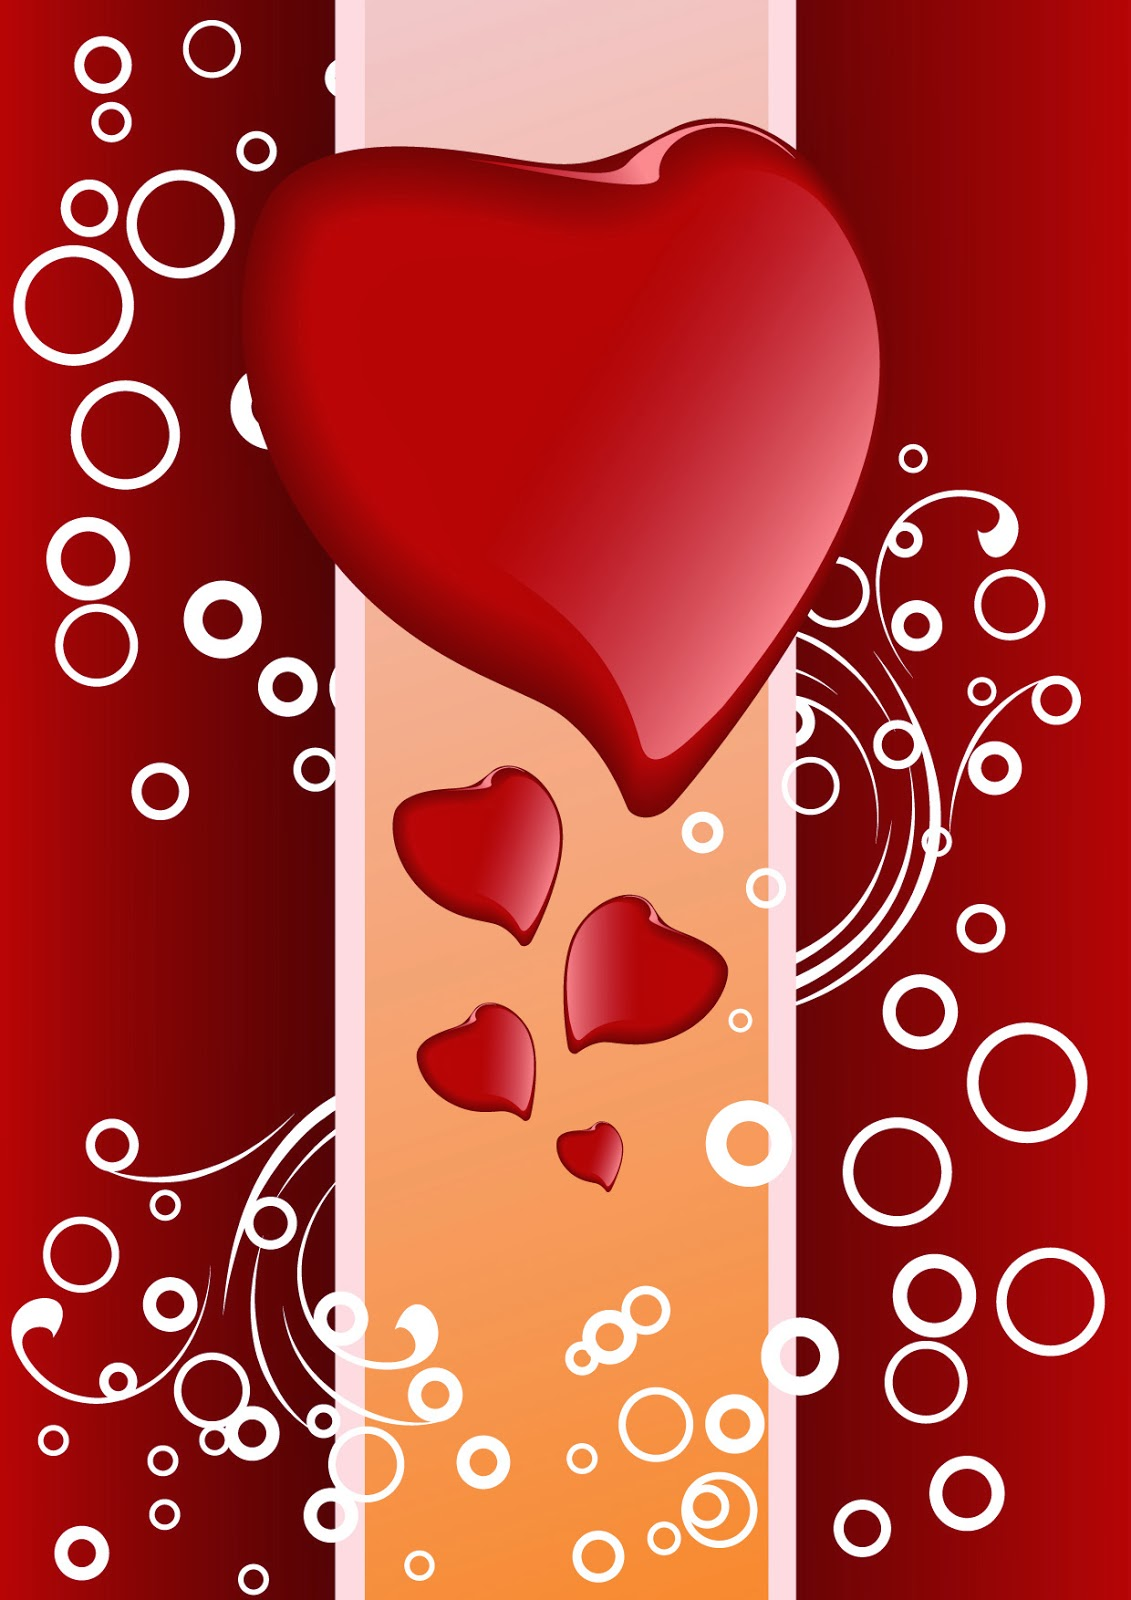 Lovable Images: Wonderful Love Heart Pictures Free